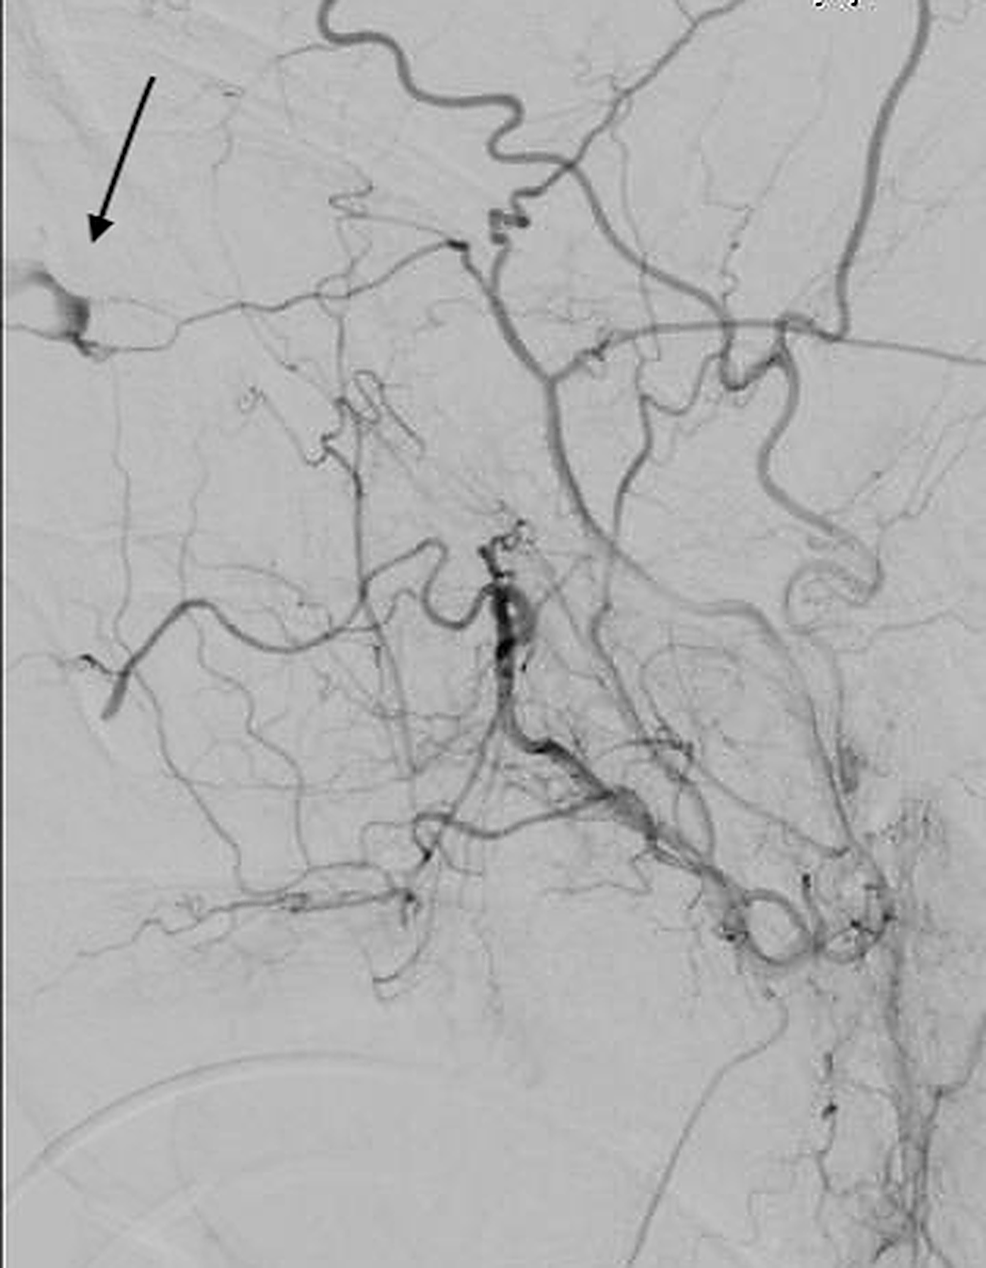 Lateral-external-carotid-angiogram-demonstrating-active-extravasation-from-the-right-meningo-ophthalmic-artery.-